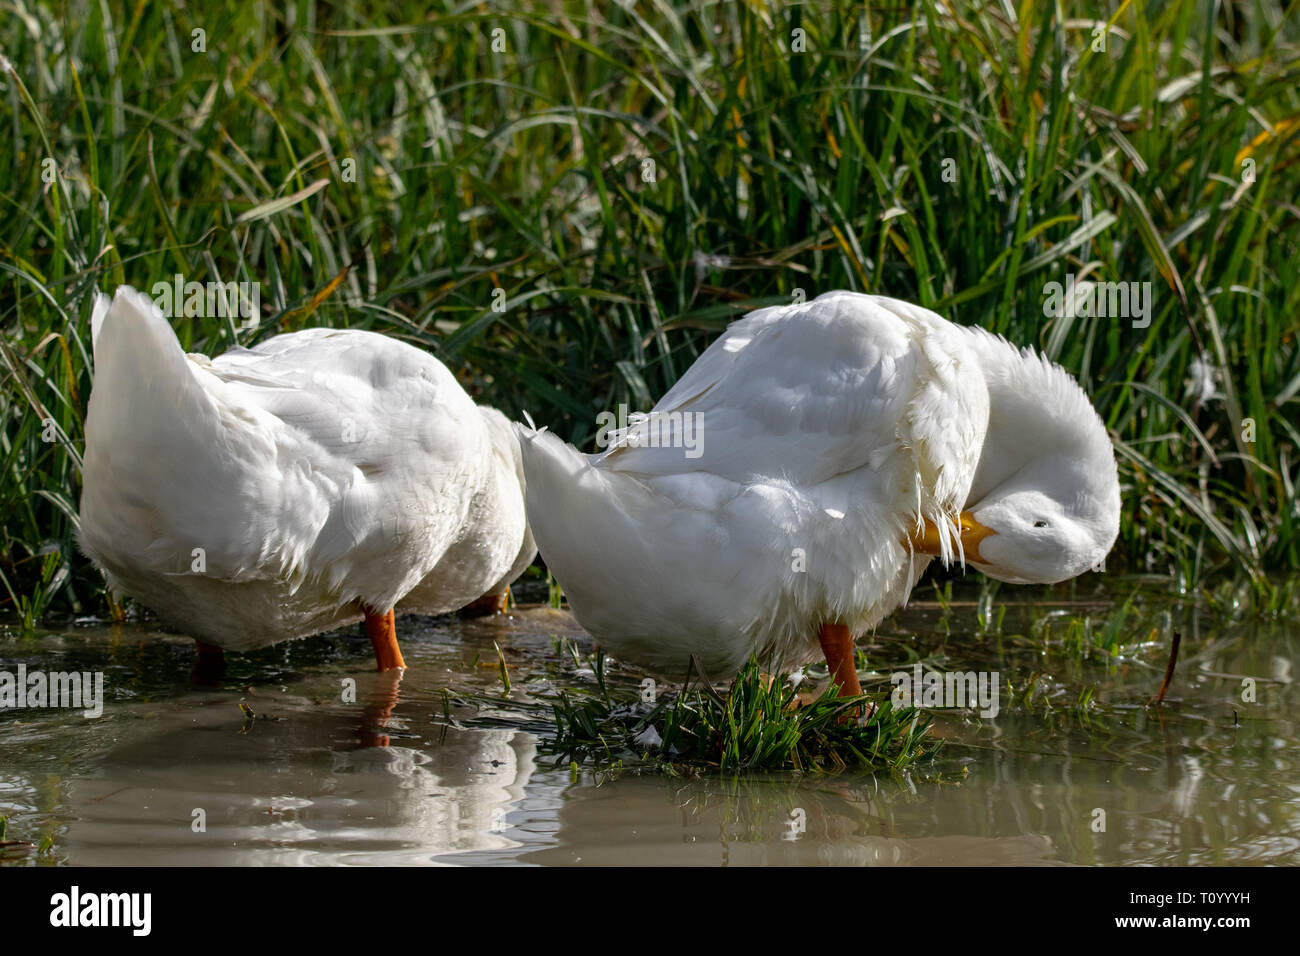 White Long Island duck also known as Aylesbury or Pekin duck - Stock Image